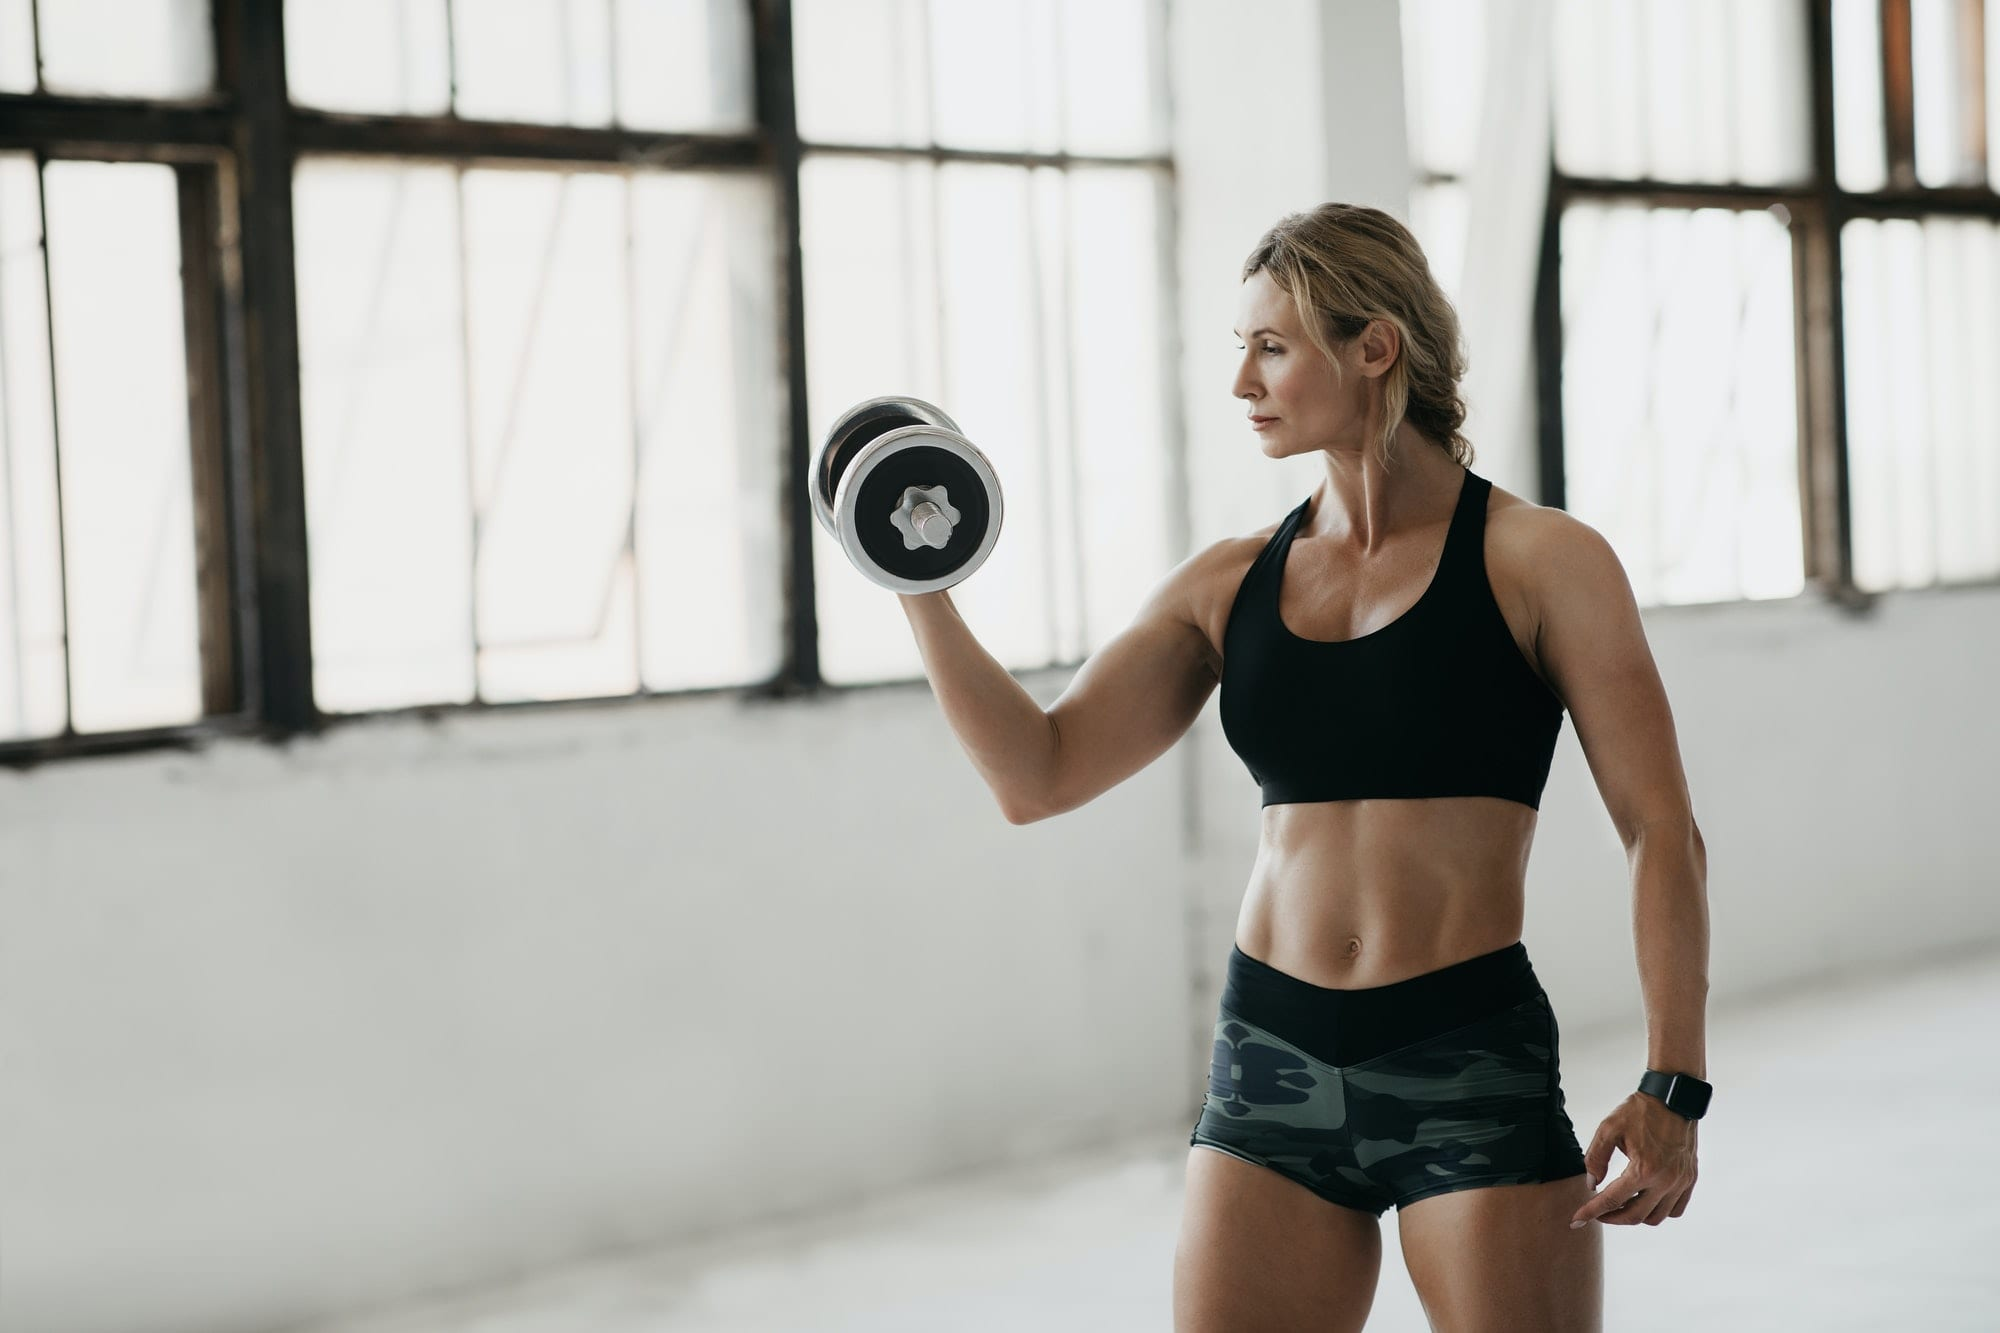 Athlete on training or online blog and home lessons